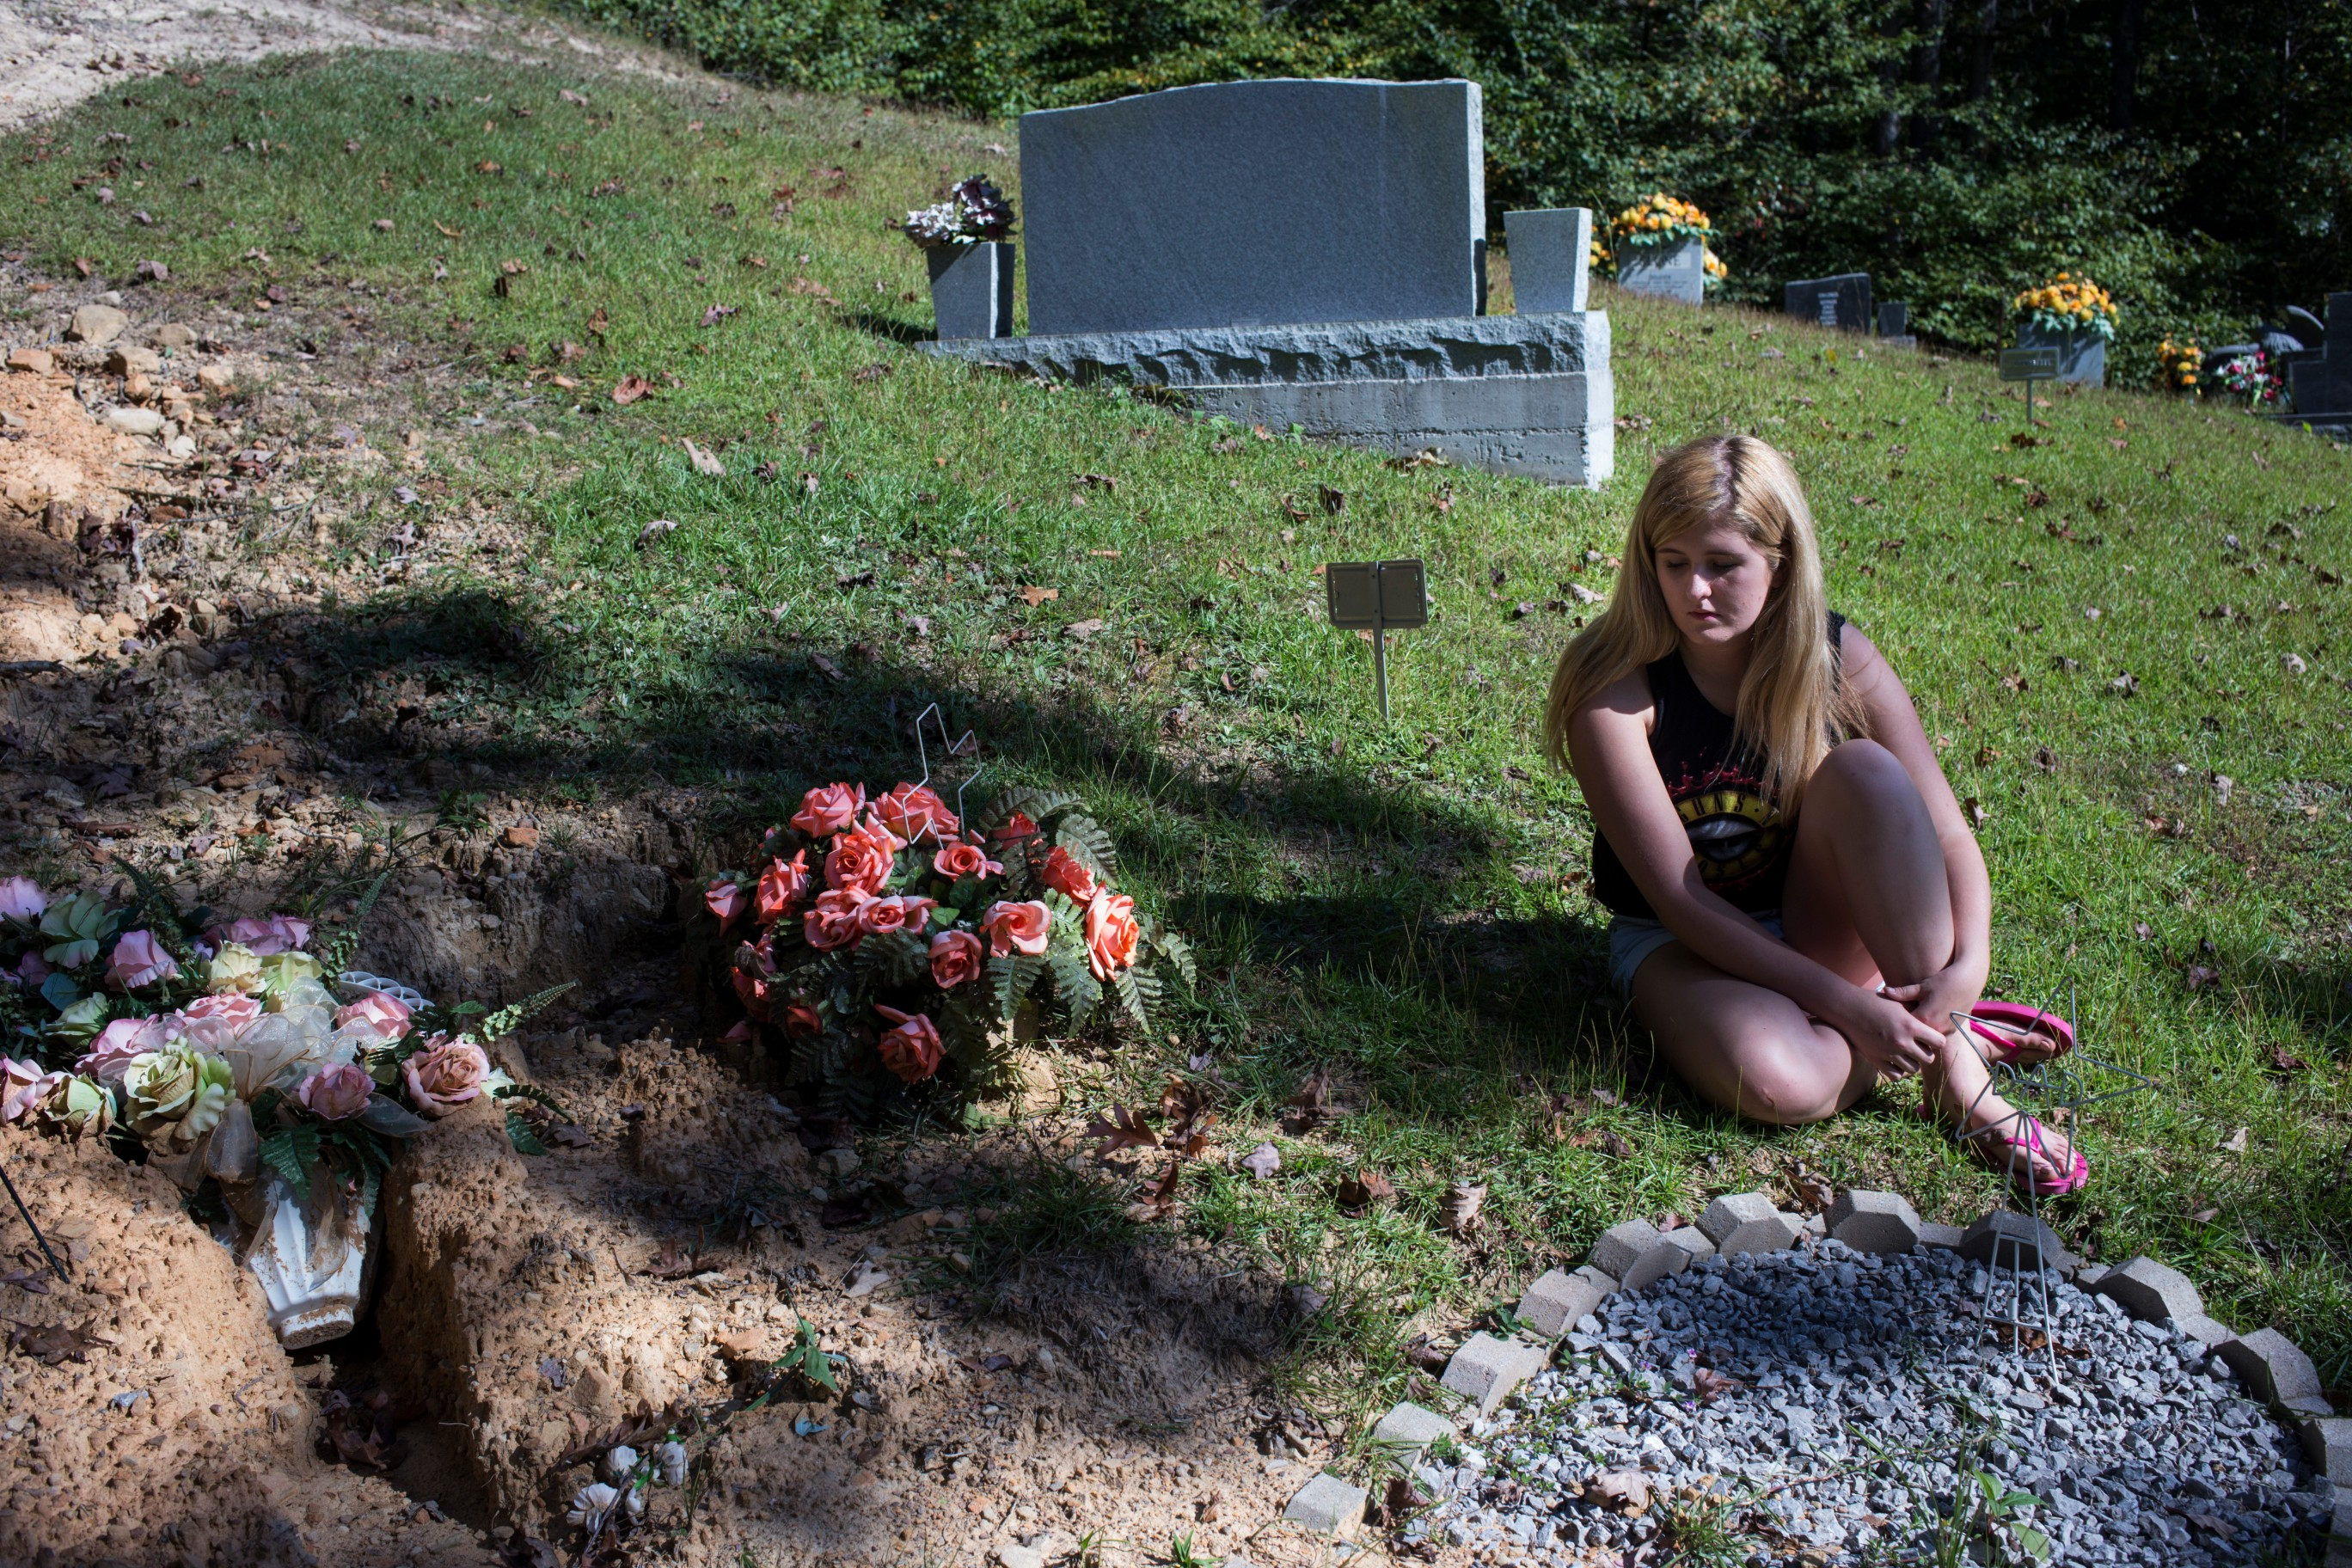 Lizzie Jones visits the grave of her parents in Belvinsville Ky., on Sunday, September 24, 2017. Jones said she likes to sit in silence when she visits with her parents as she feels like she's having an internal dialogue with them that is more spiritual than it is direct. (Photo by Brittany Greeson/GroundTruth)